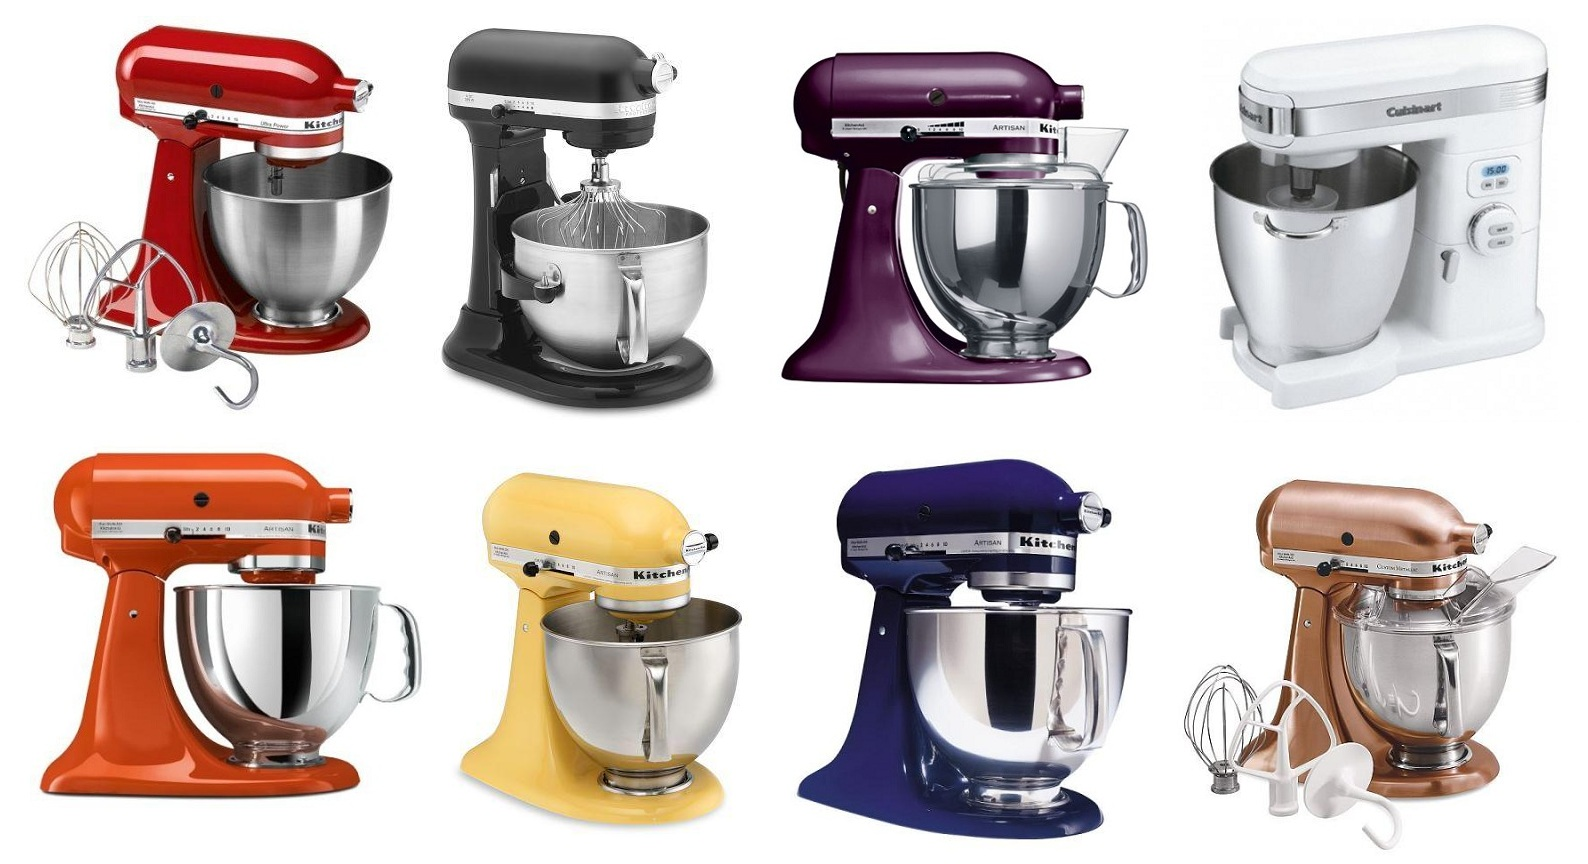 Image Result For Kitchenaid Mixer Used For Sale